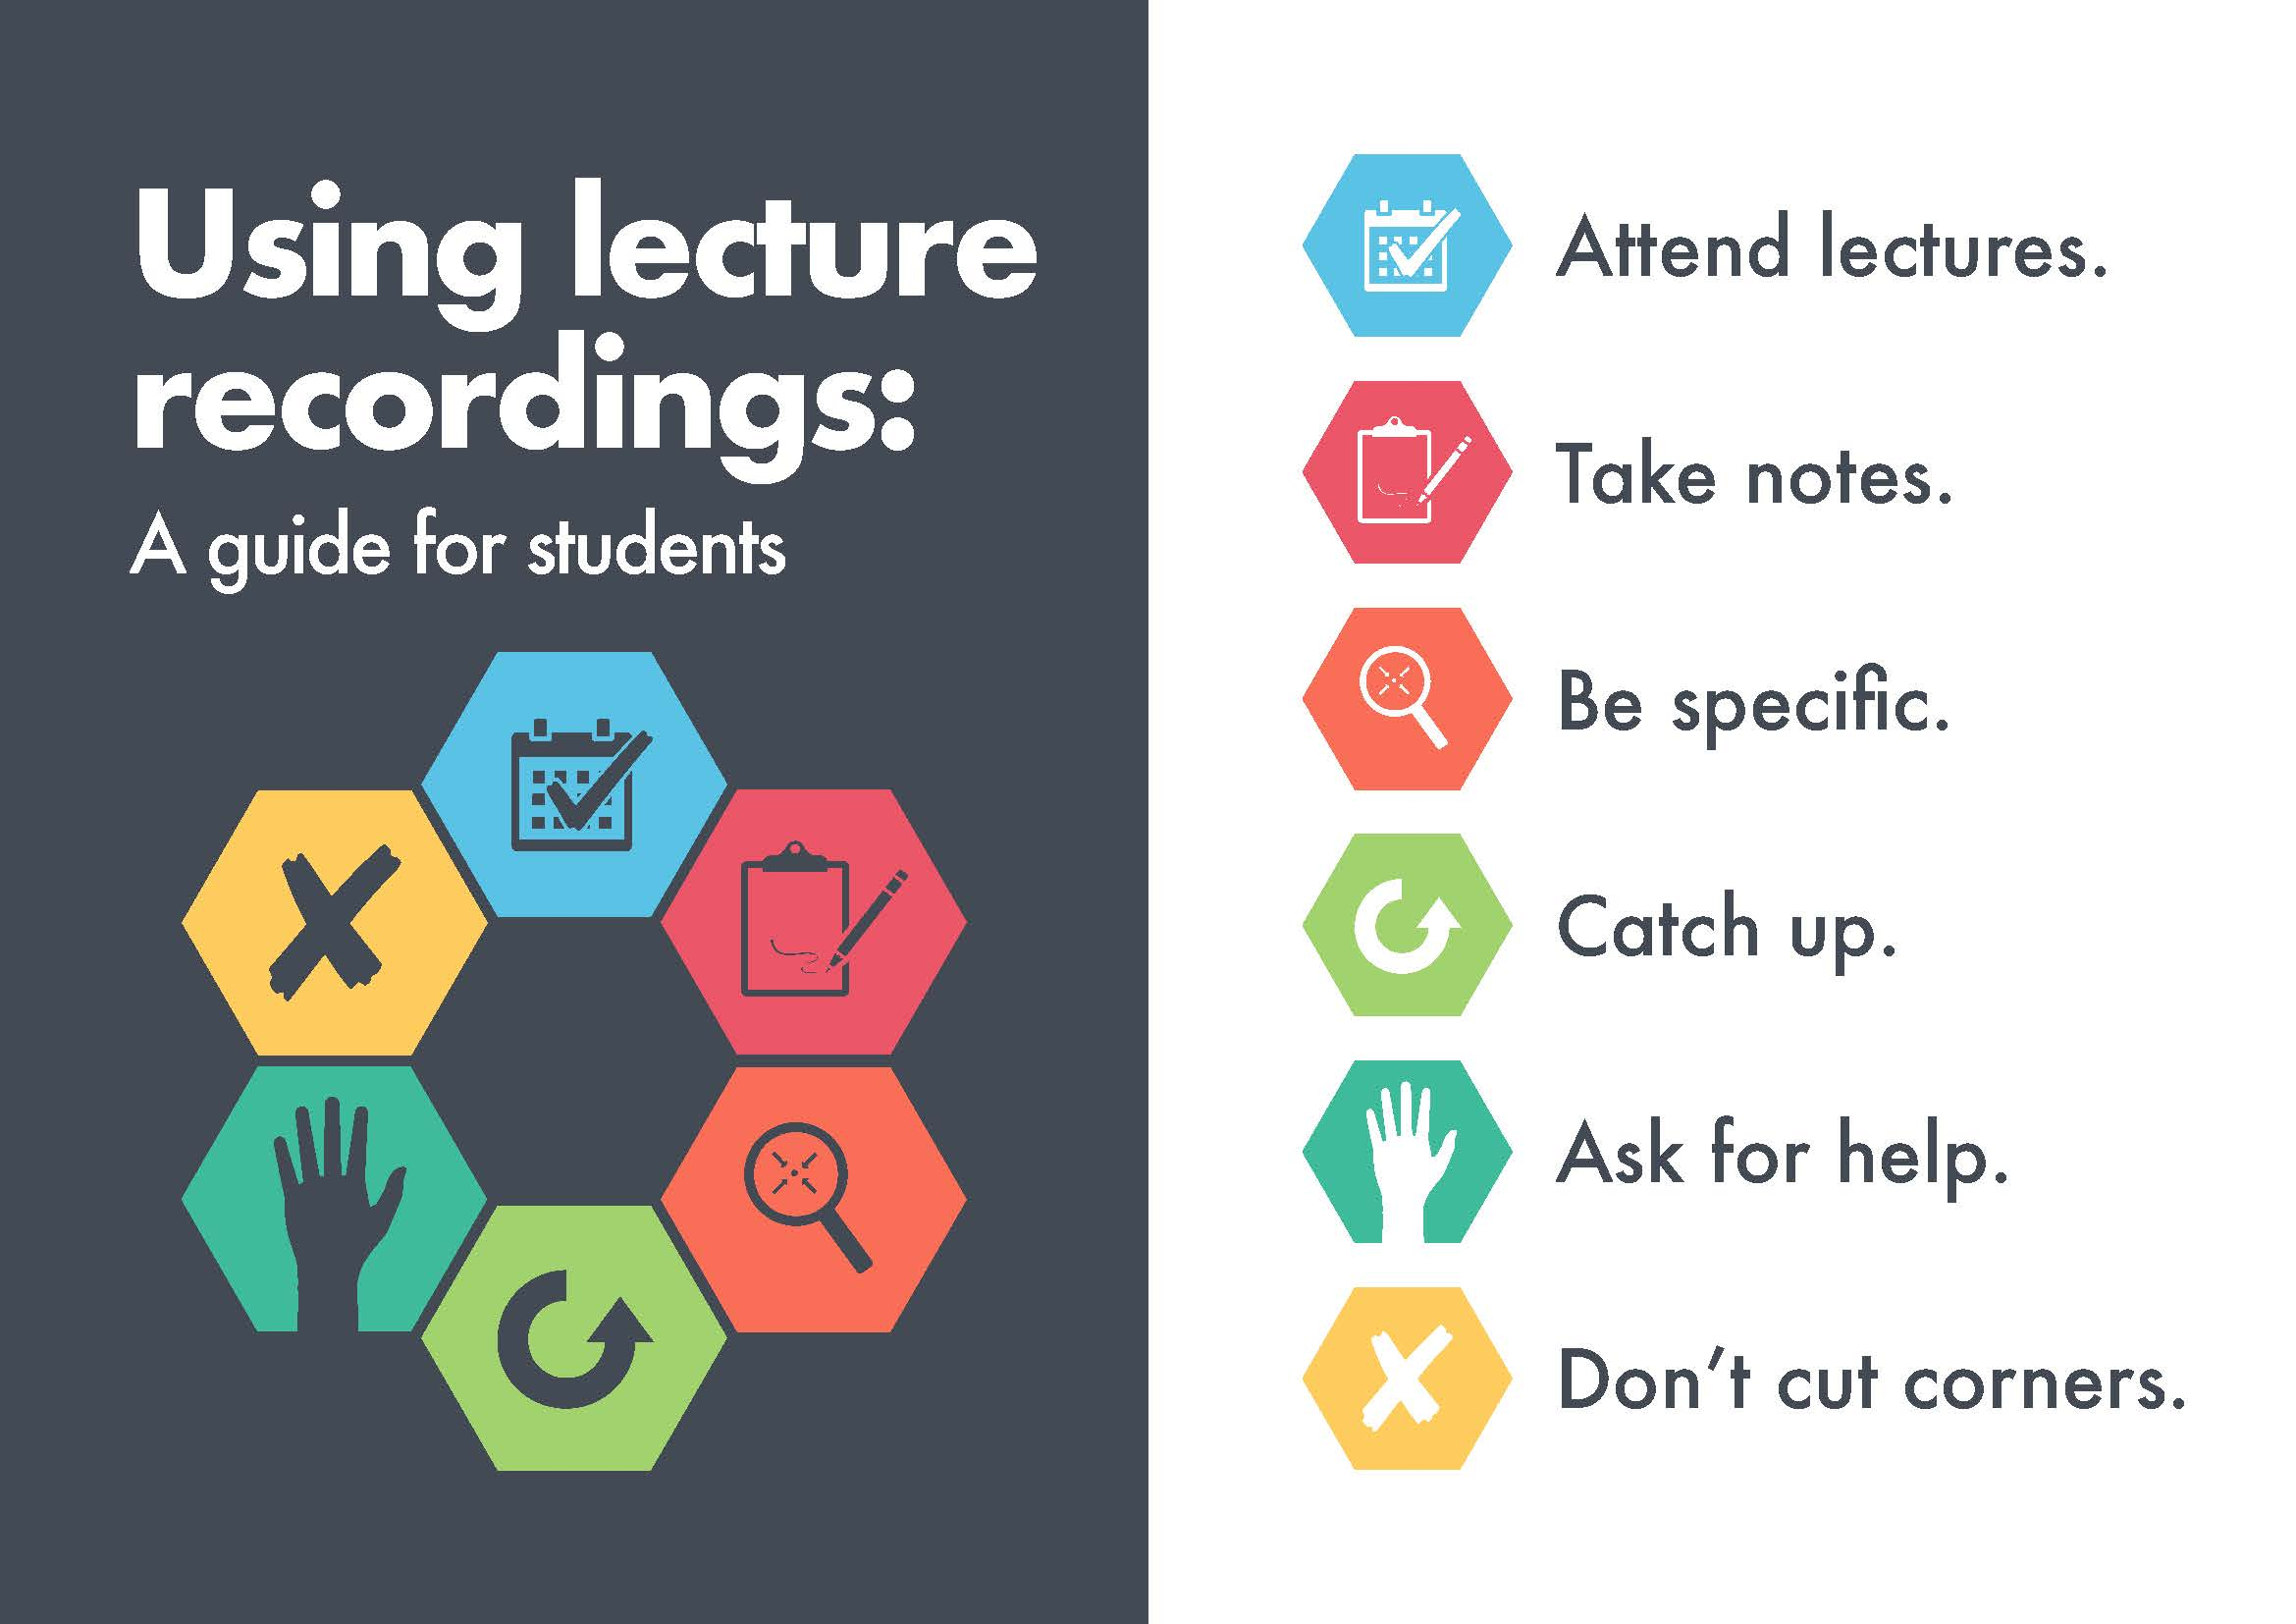 Using Lecture recording - a guide for students